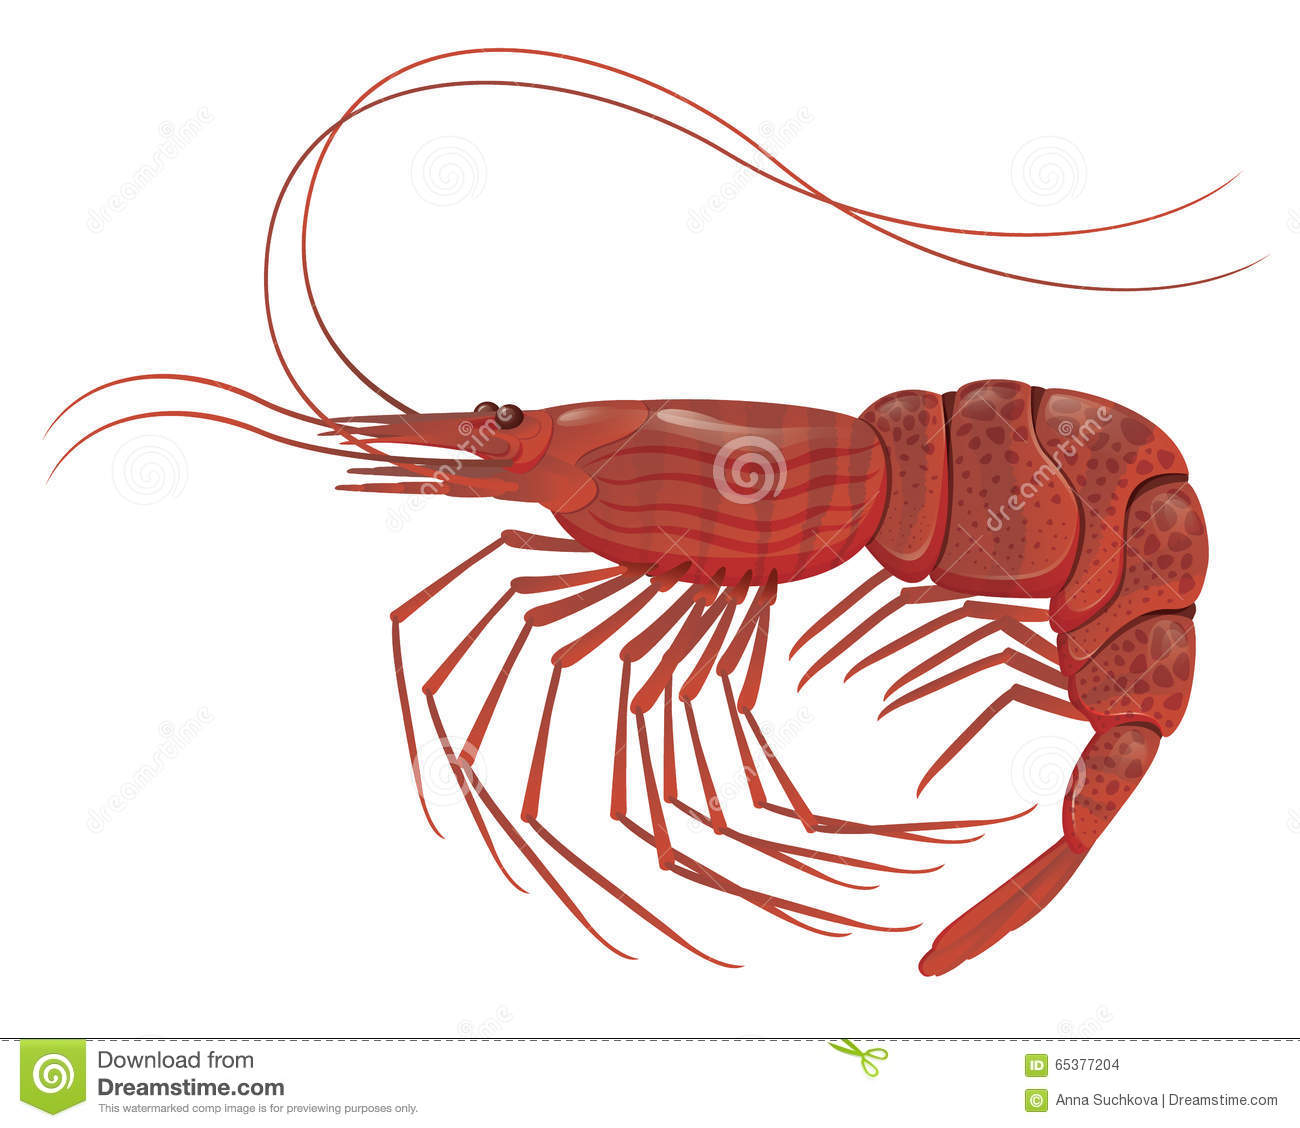 Dorable Shrimp Anatomy Veins Pictures - Physiology Of Human Body ...